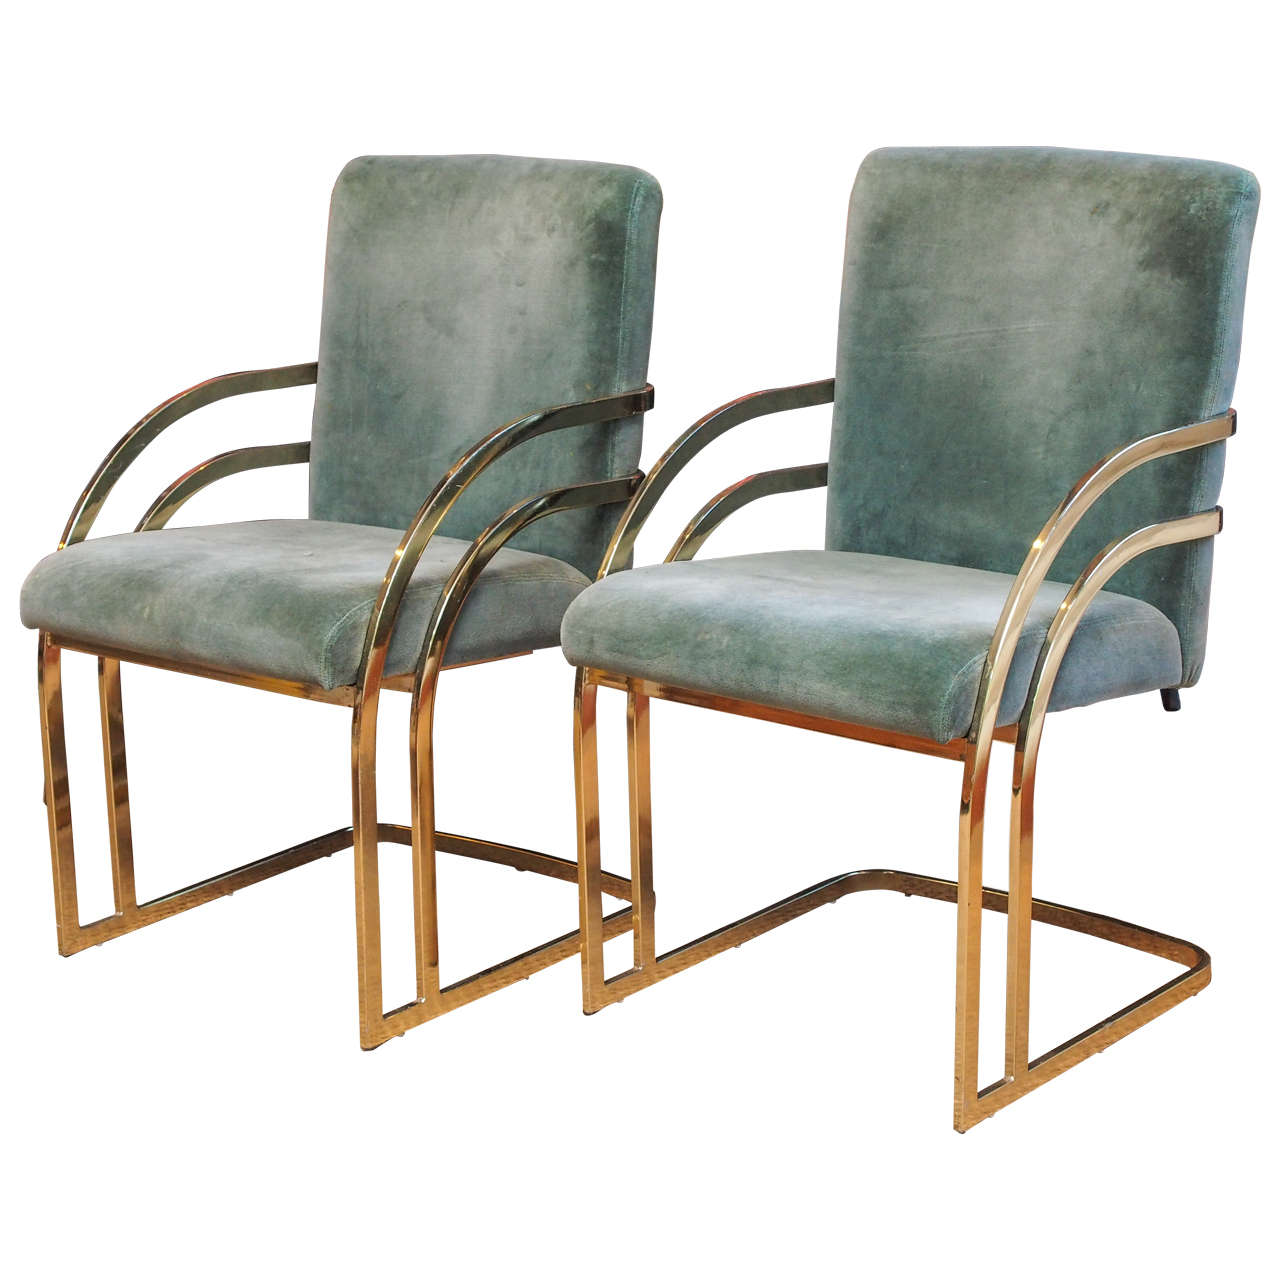 Delicieux Pair Of Brass Cantilever Chairs For Sale